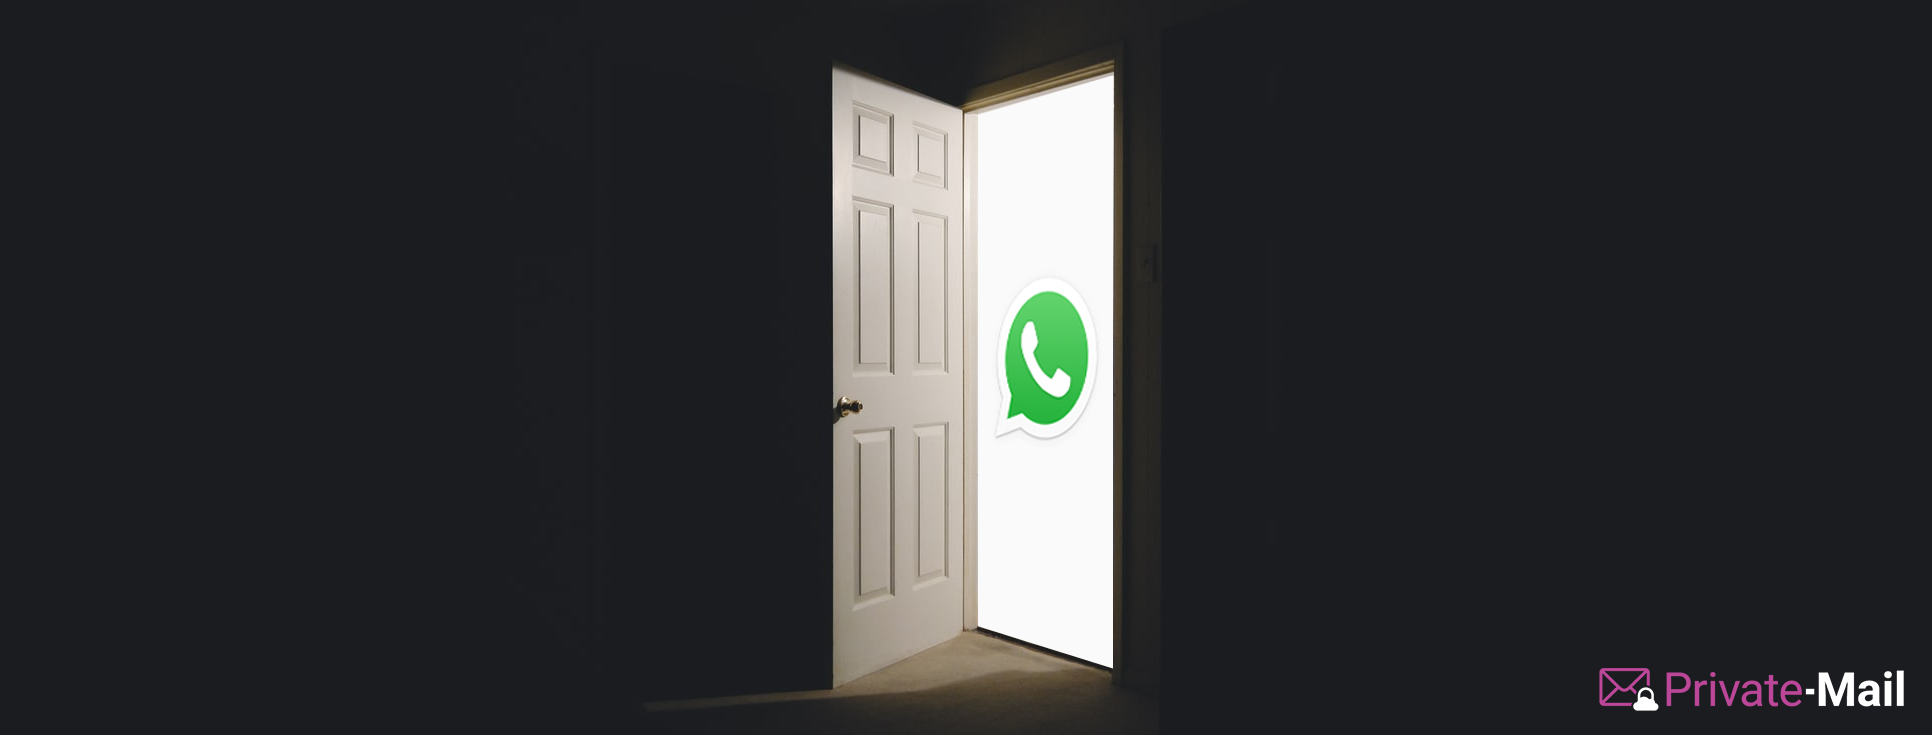 Telegram Founder says WhatsApp Contains Numerous Backdoors